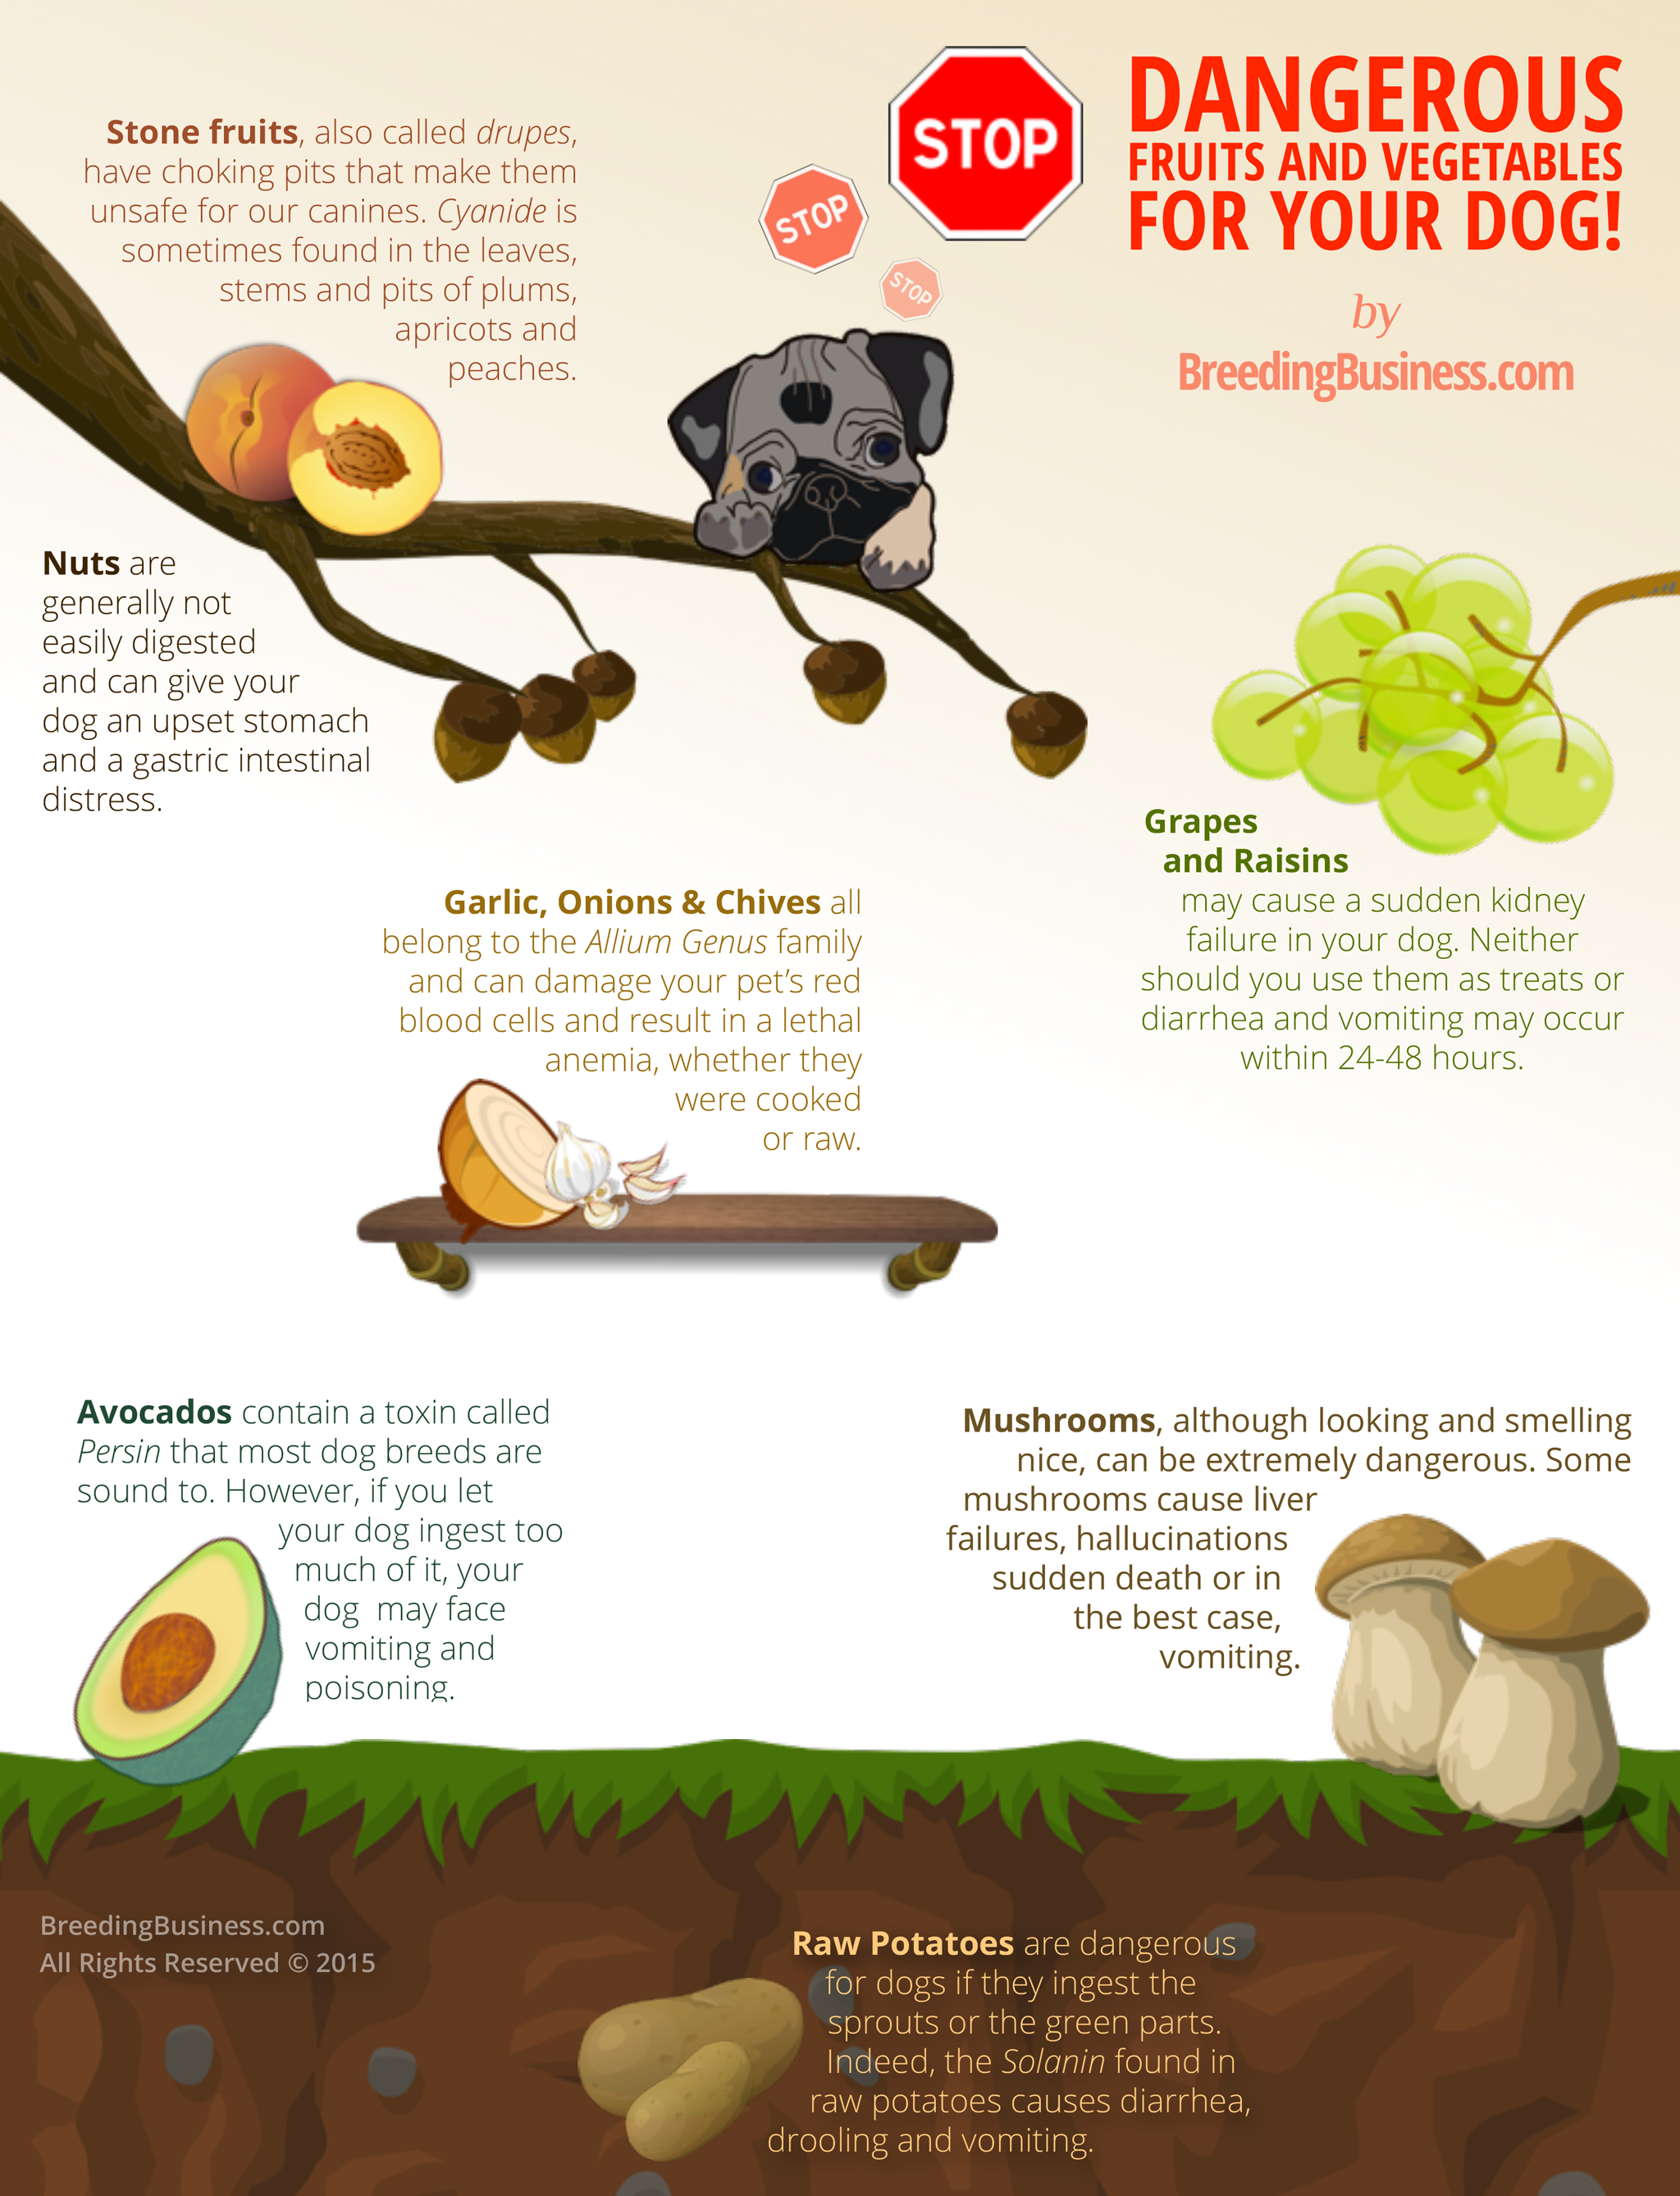 Can Dogs Eat Grapes, Raisins, Potatoes, Nuts, Mushrooms, Avocados, Peaches, Fruits and Vegetables? Are they dangerous or edible? Infographic for Dog Breeders!